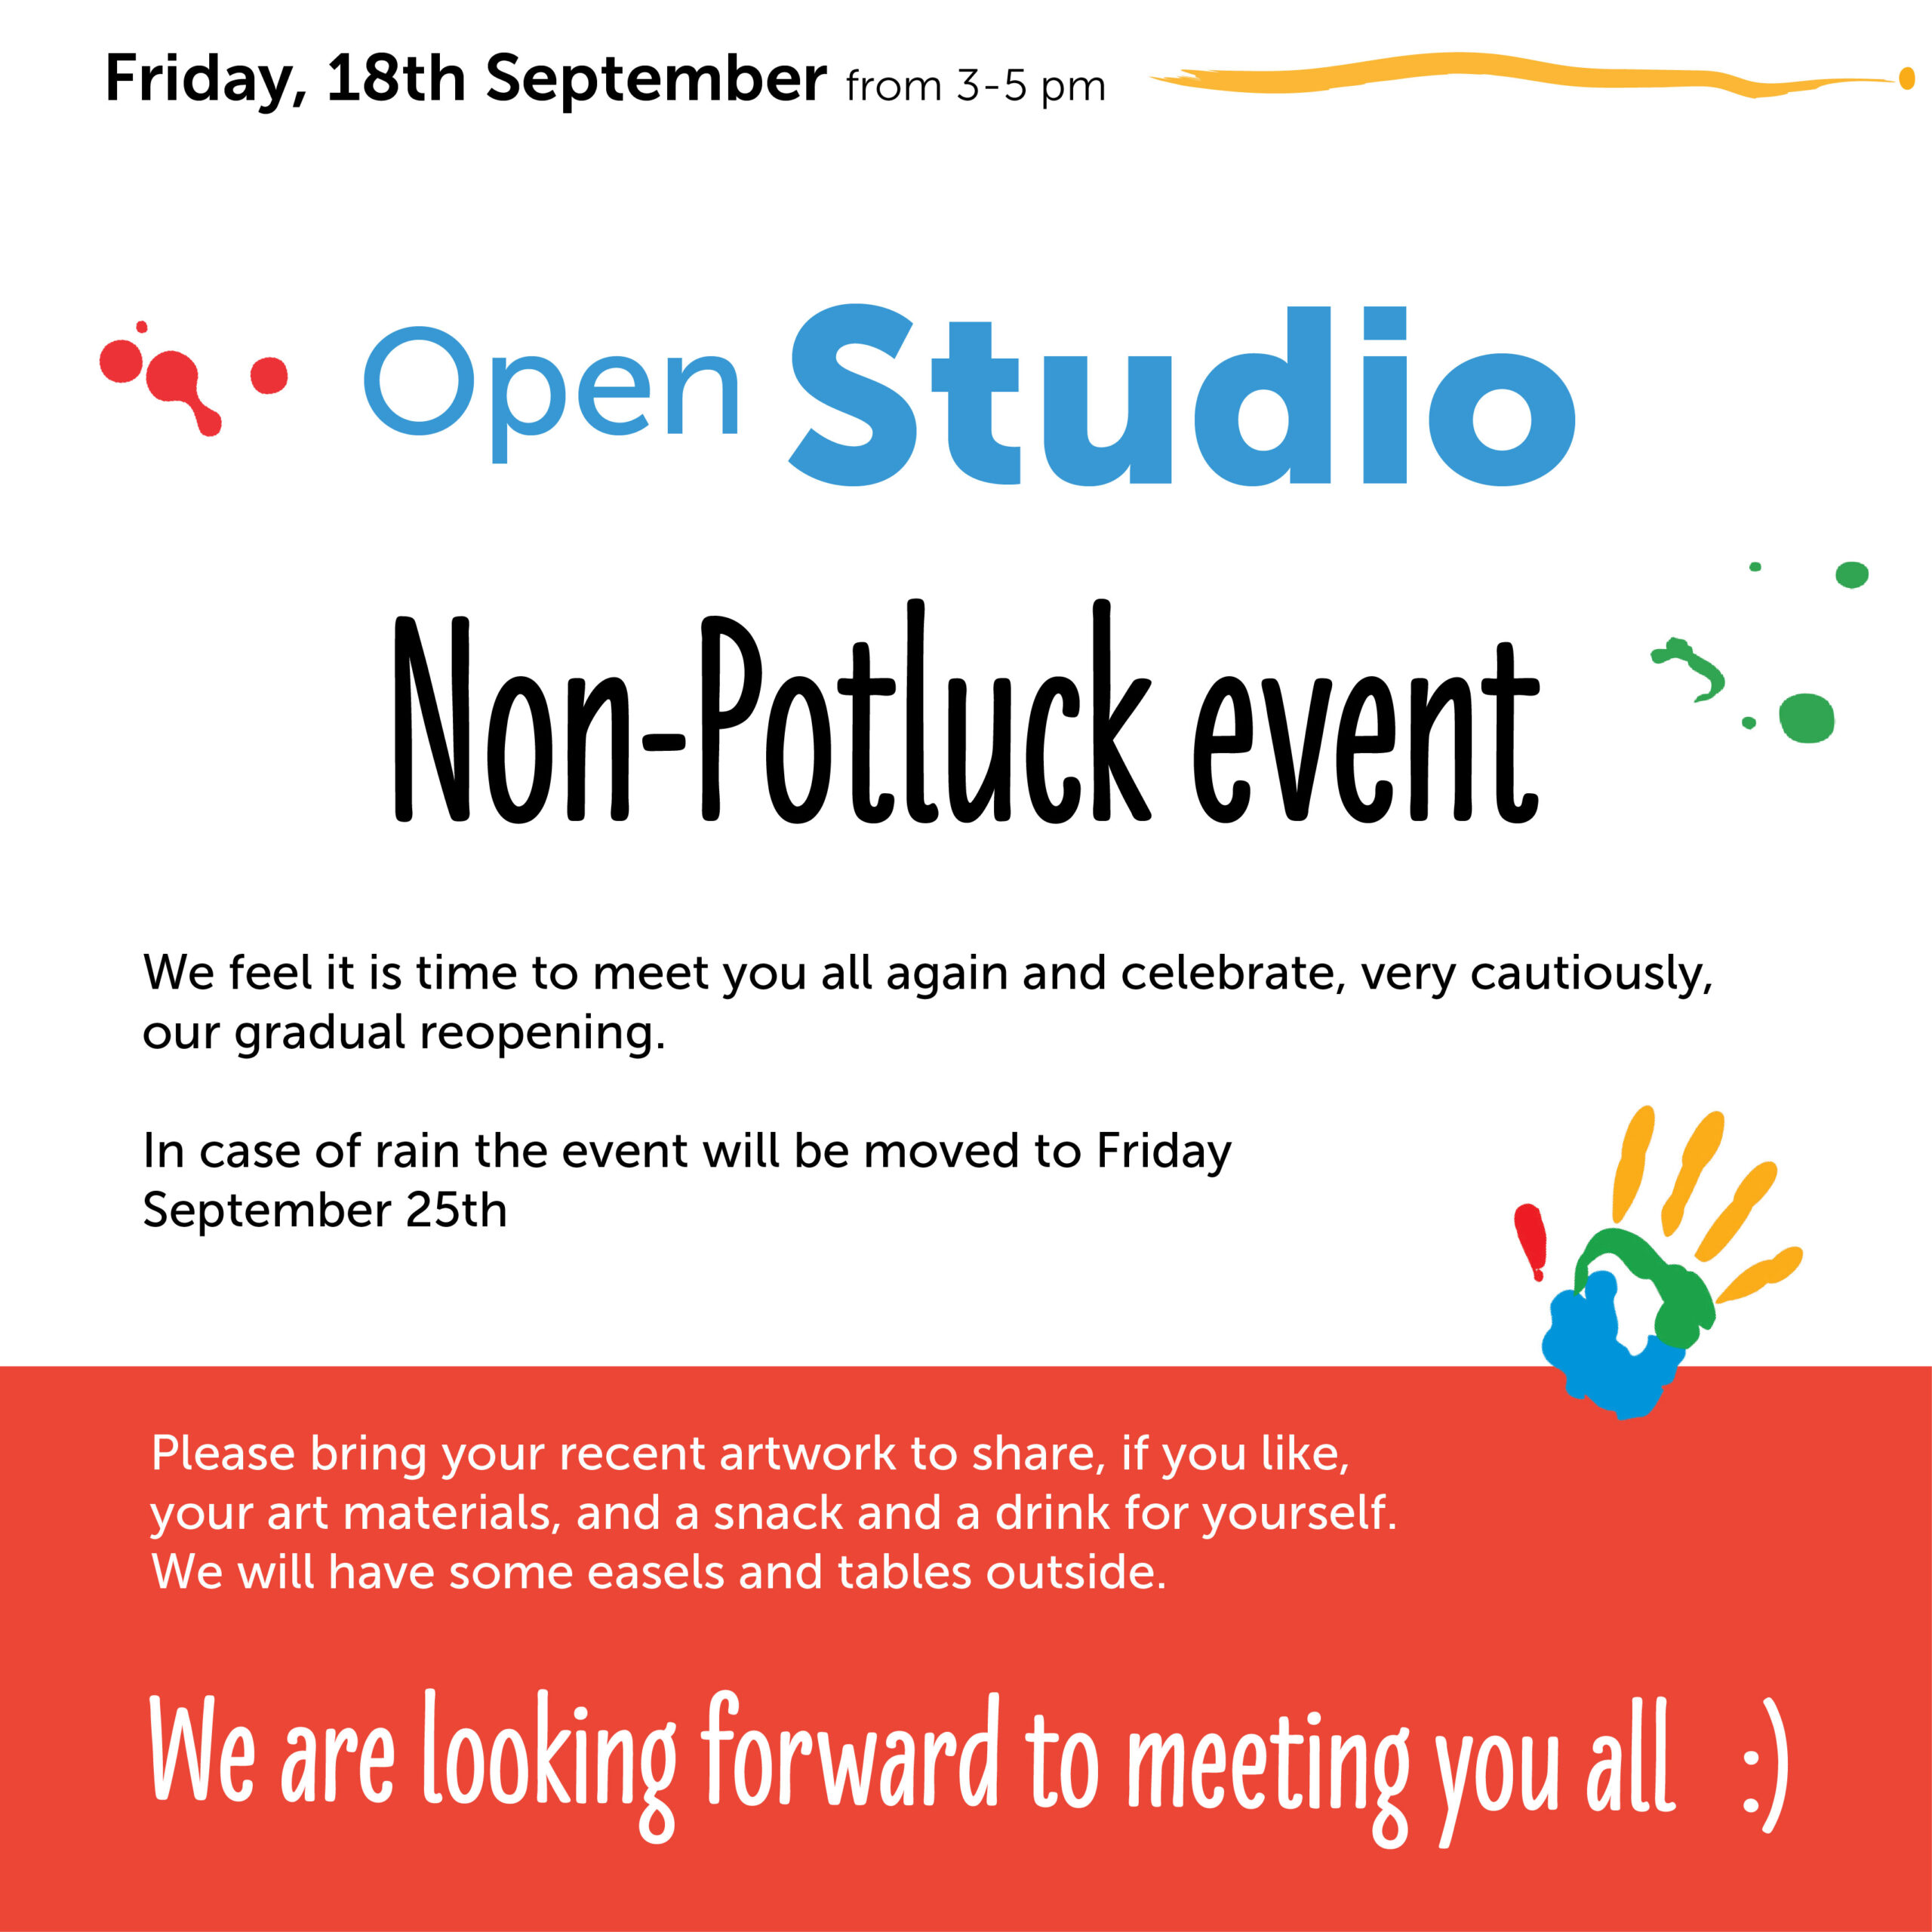 Open Studio - Friday, 18th September